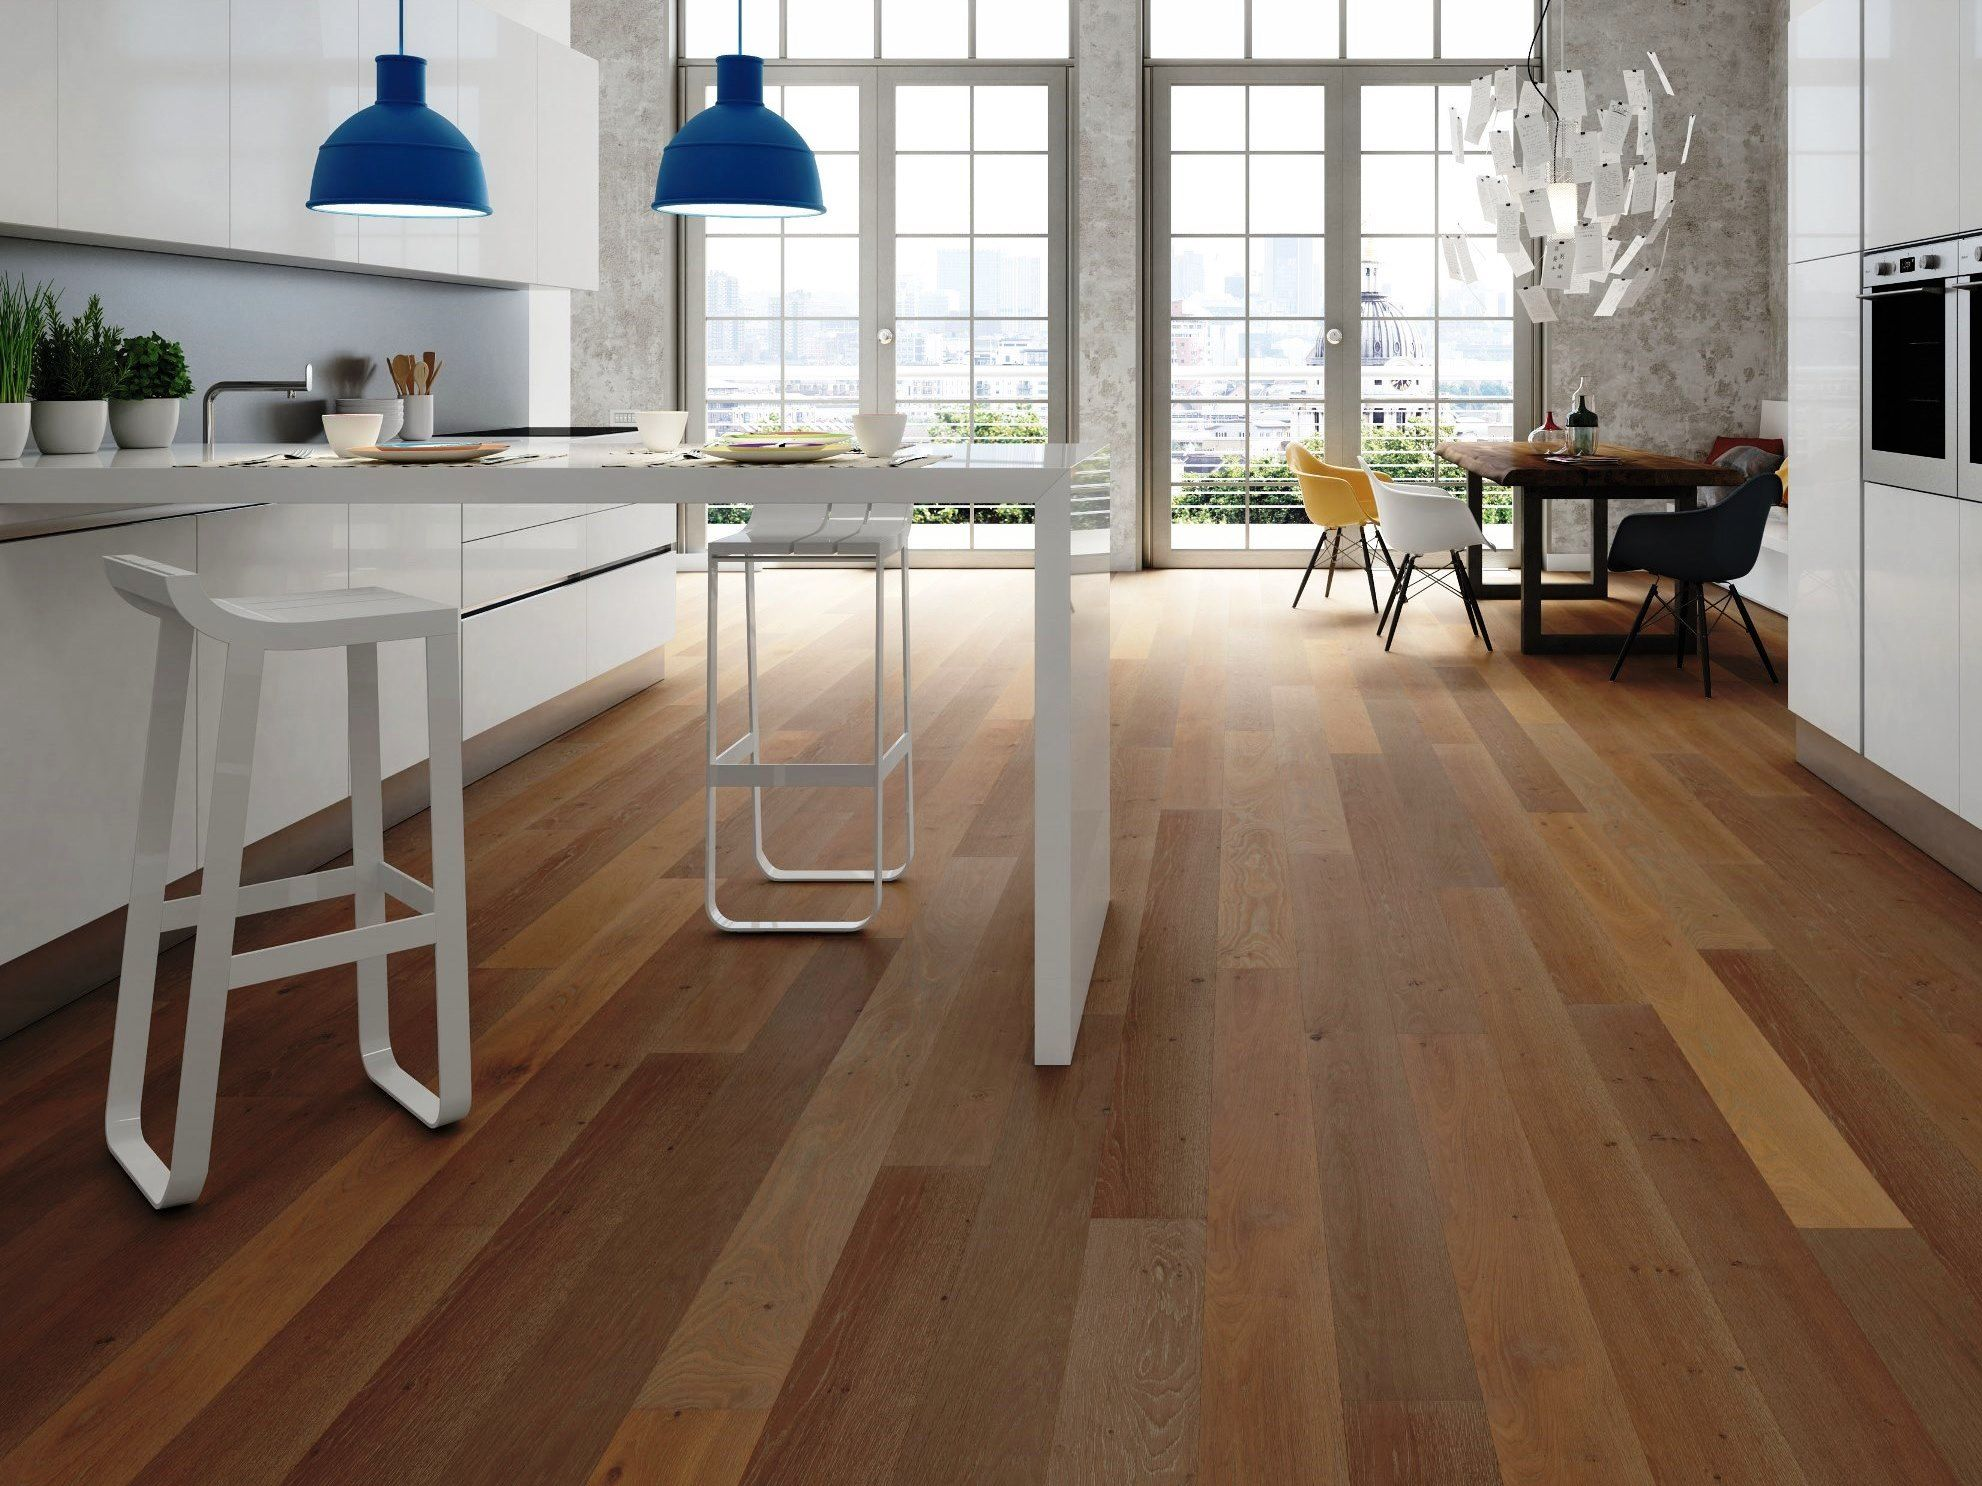 Best Kitchen Gallery: Collection Dream 160 Parquet Rovere Fancy By Woodco Home of Fancy Home Flooring on rachelxblog.com